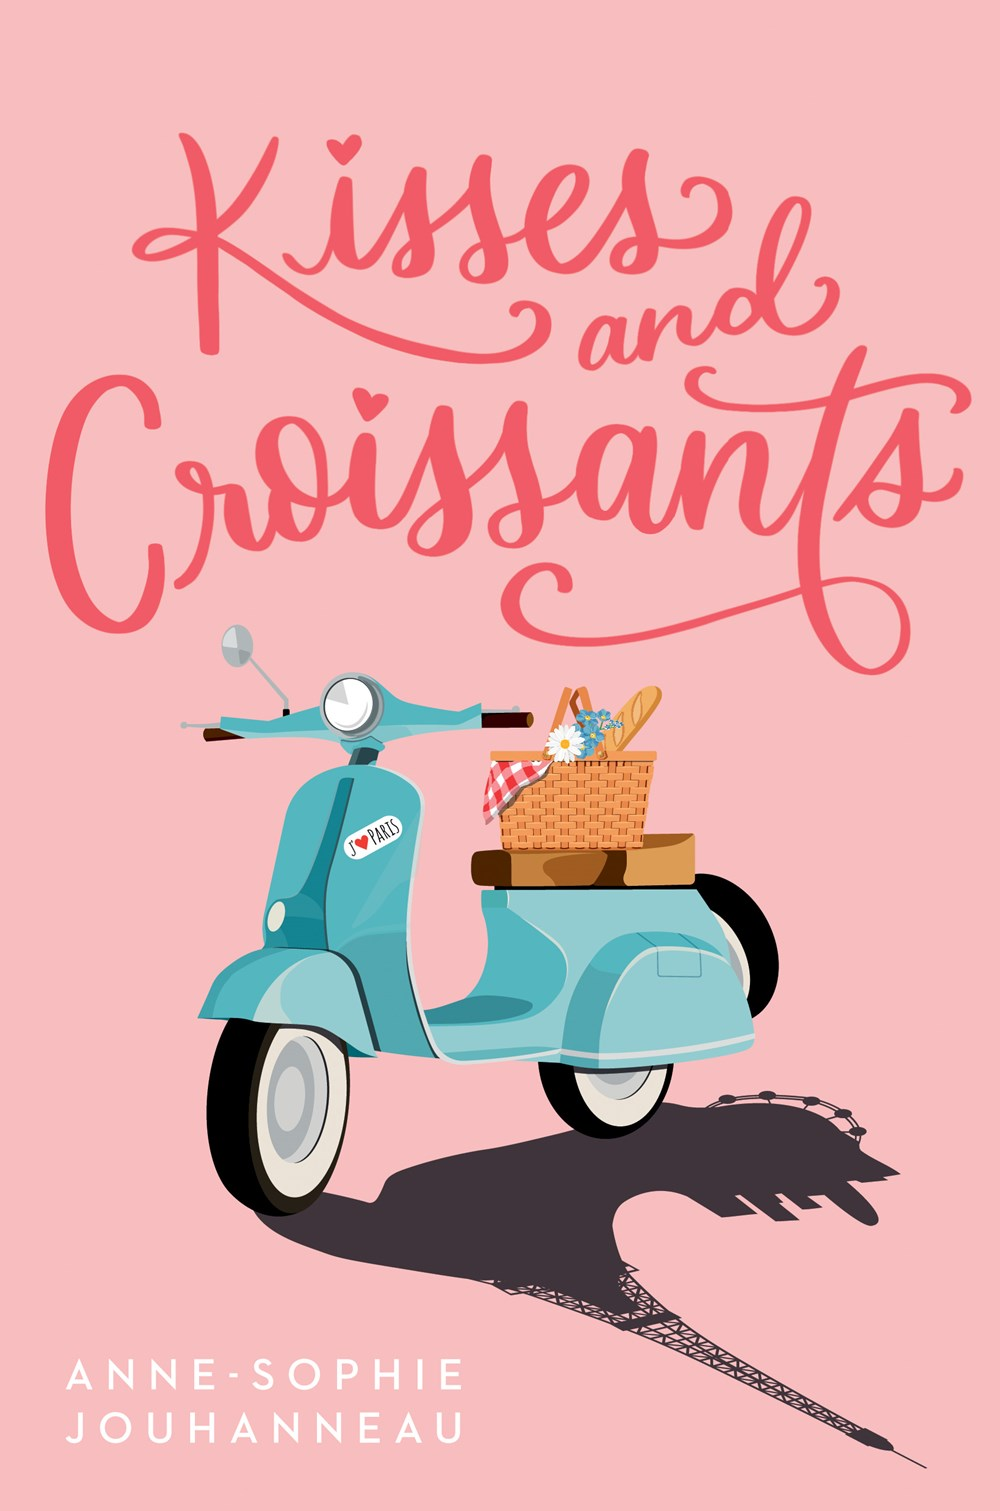 Kisses and Croissants